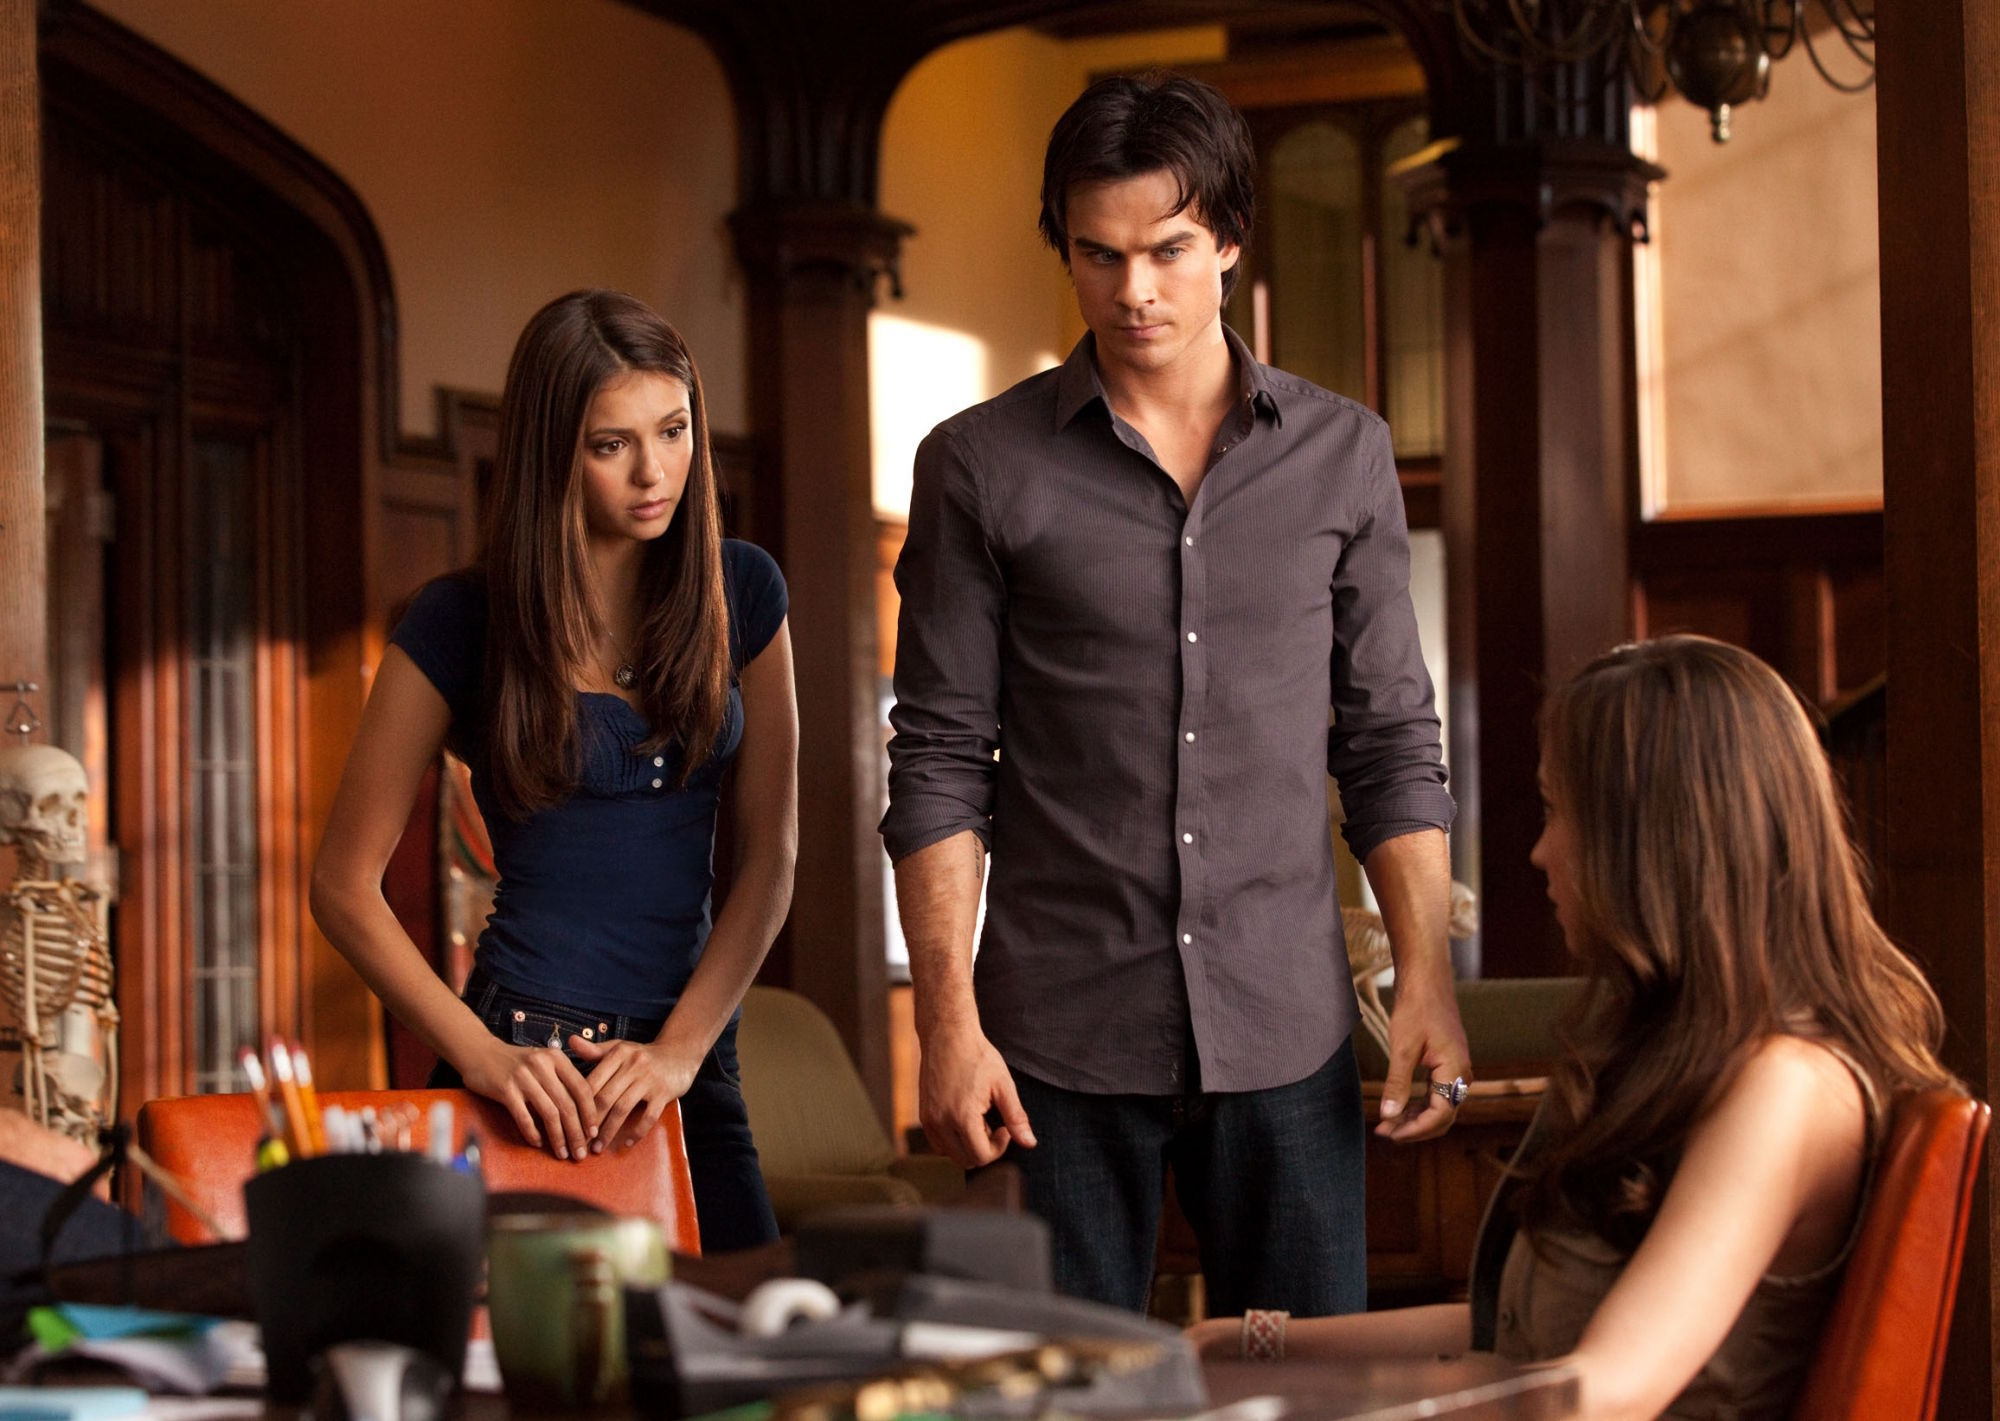 http://images4.fanpop.com/image/photos/15300000/Bad-Moon-Rising-2x03-the-vampire-diaries-tv-show-15391328-2000-1421.jpg